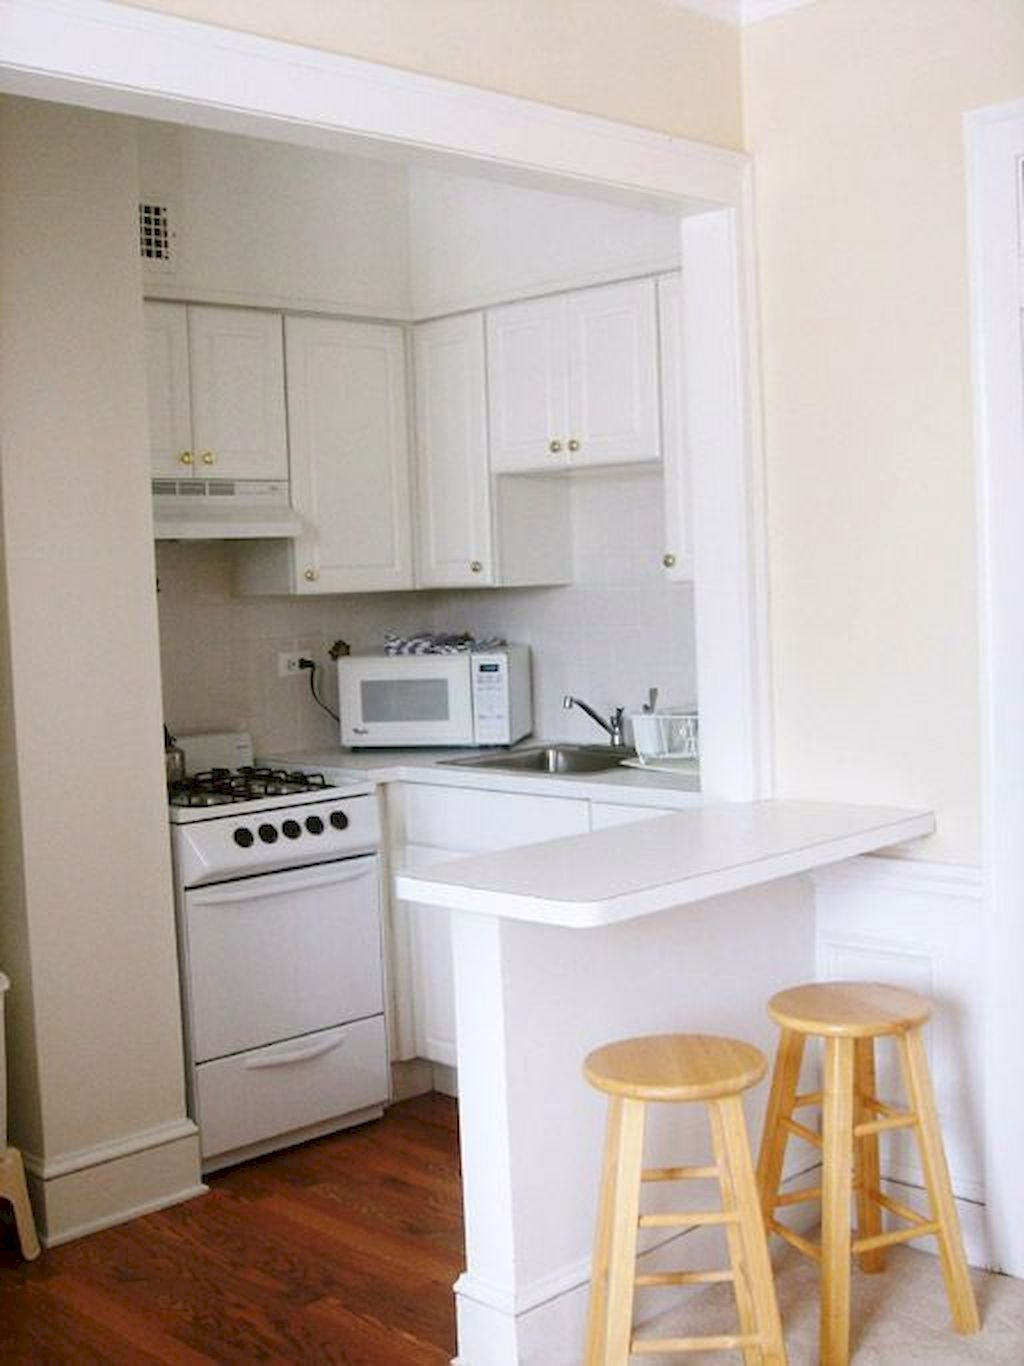 Awesome 70 Small Apartment Kitchen Ideas On A Budget Https Carribeanpic Com 70 Small Apar Small Apartment Kitchen Kitchen Design Small Kitchen Remodel Small